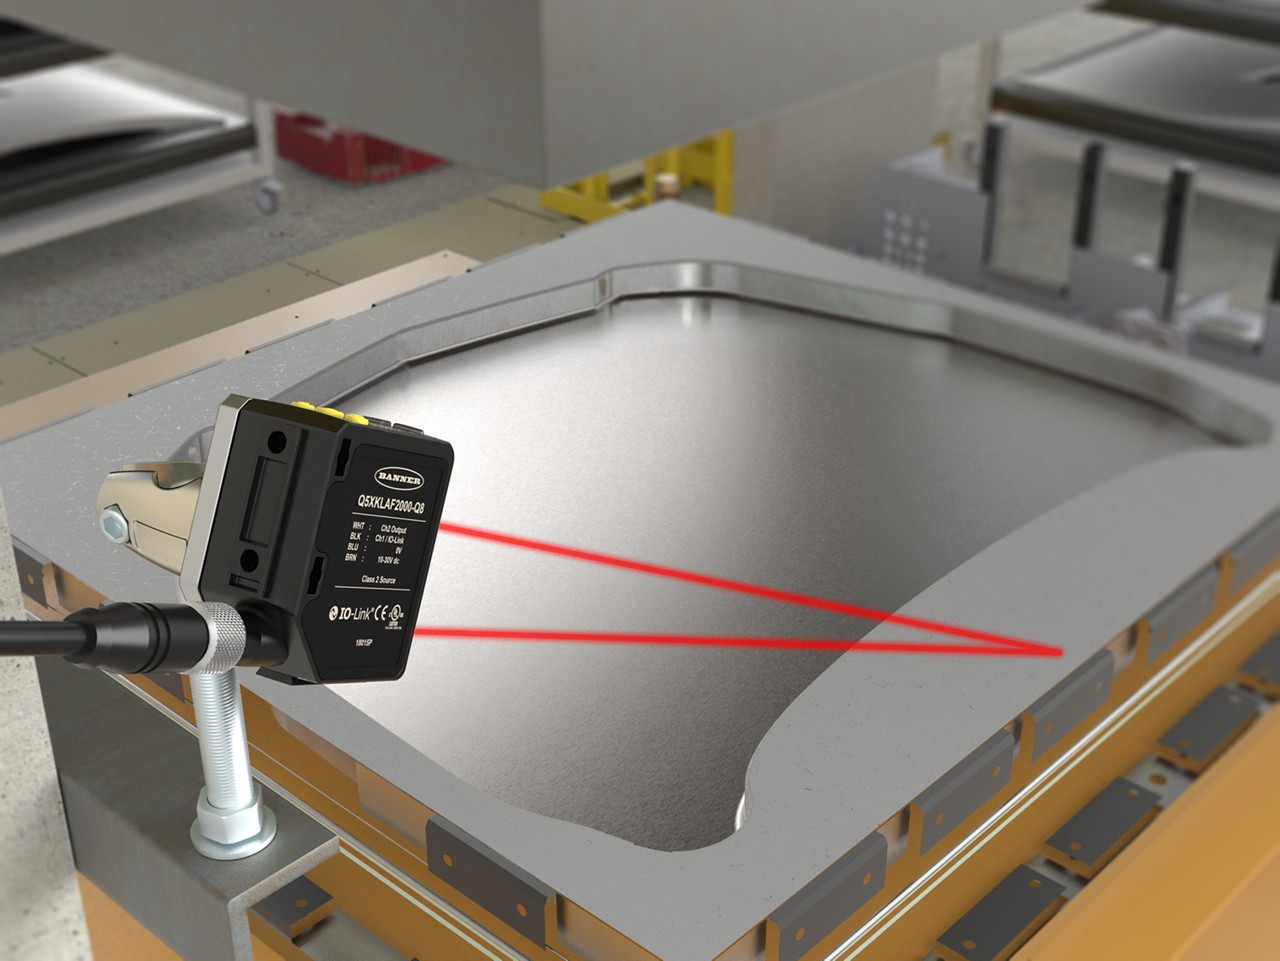 laser sensor verifies that a metal sheet is indexed on a stamping press